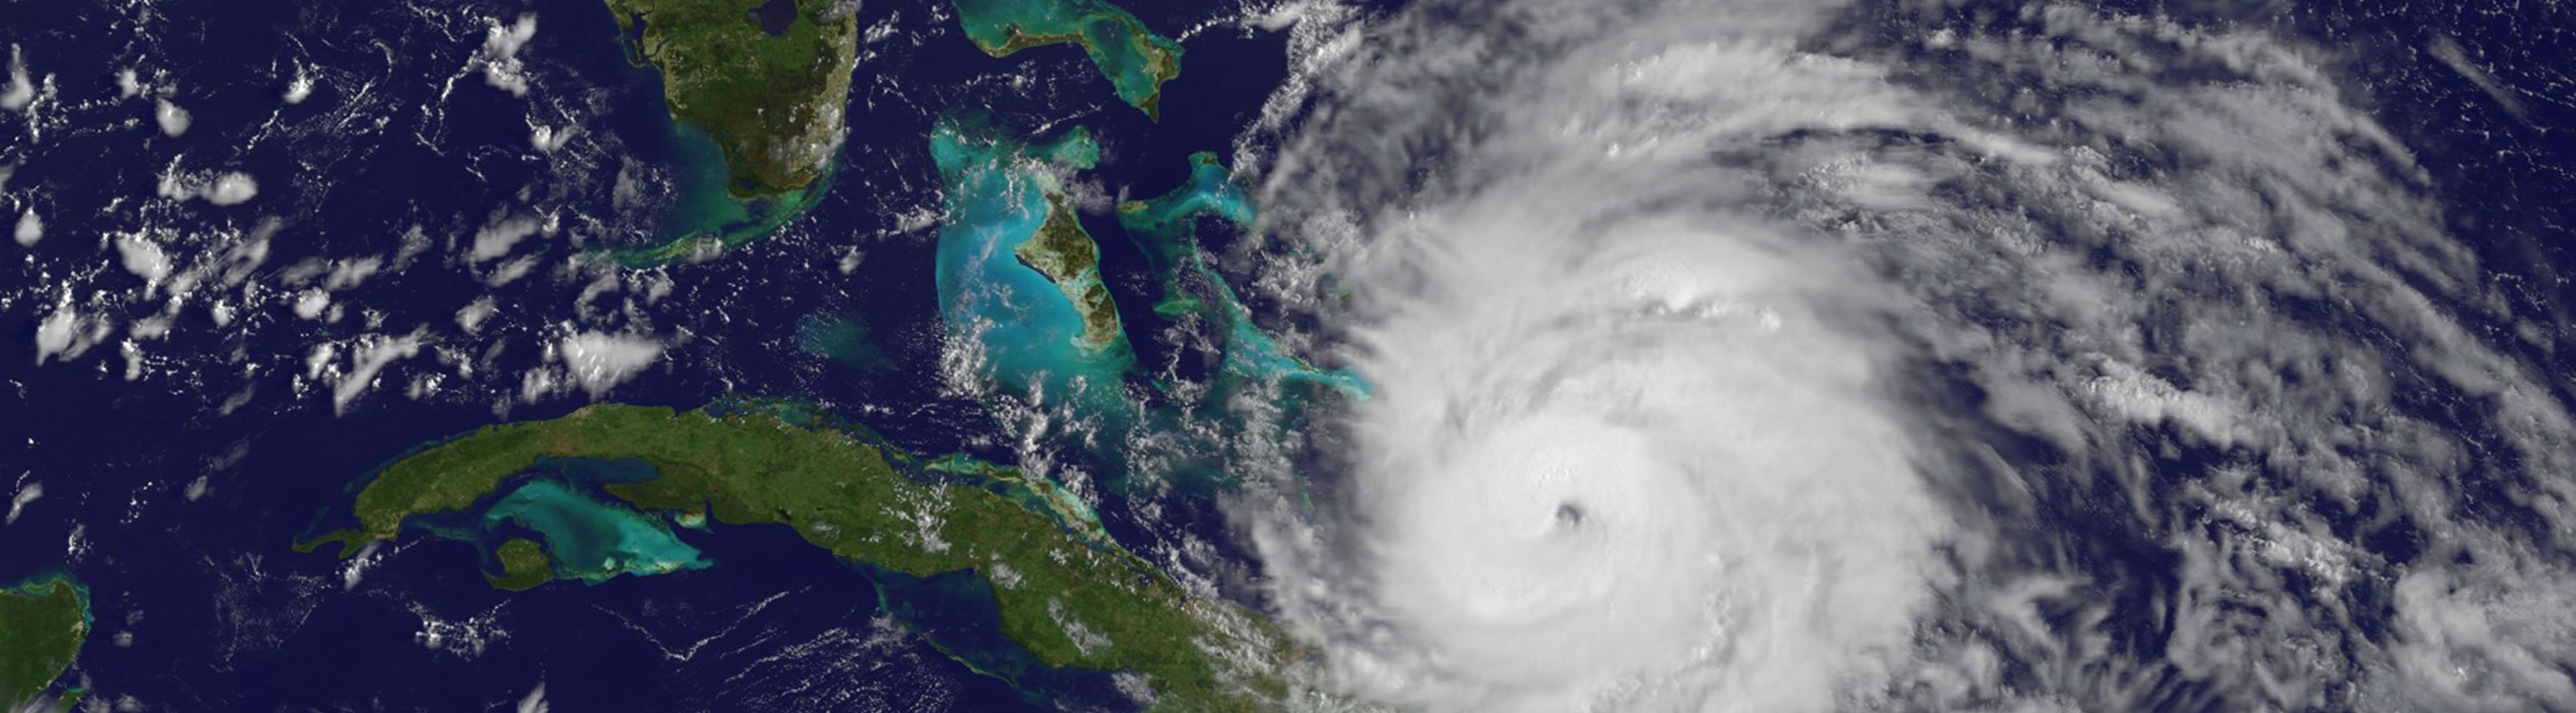 satellite view of a hurricane in the caribbean